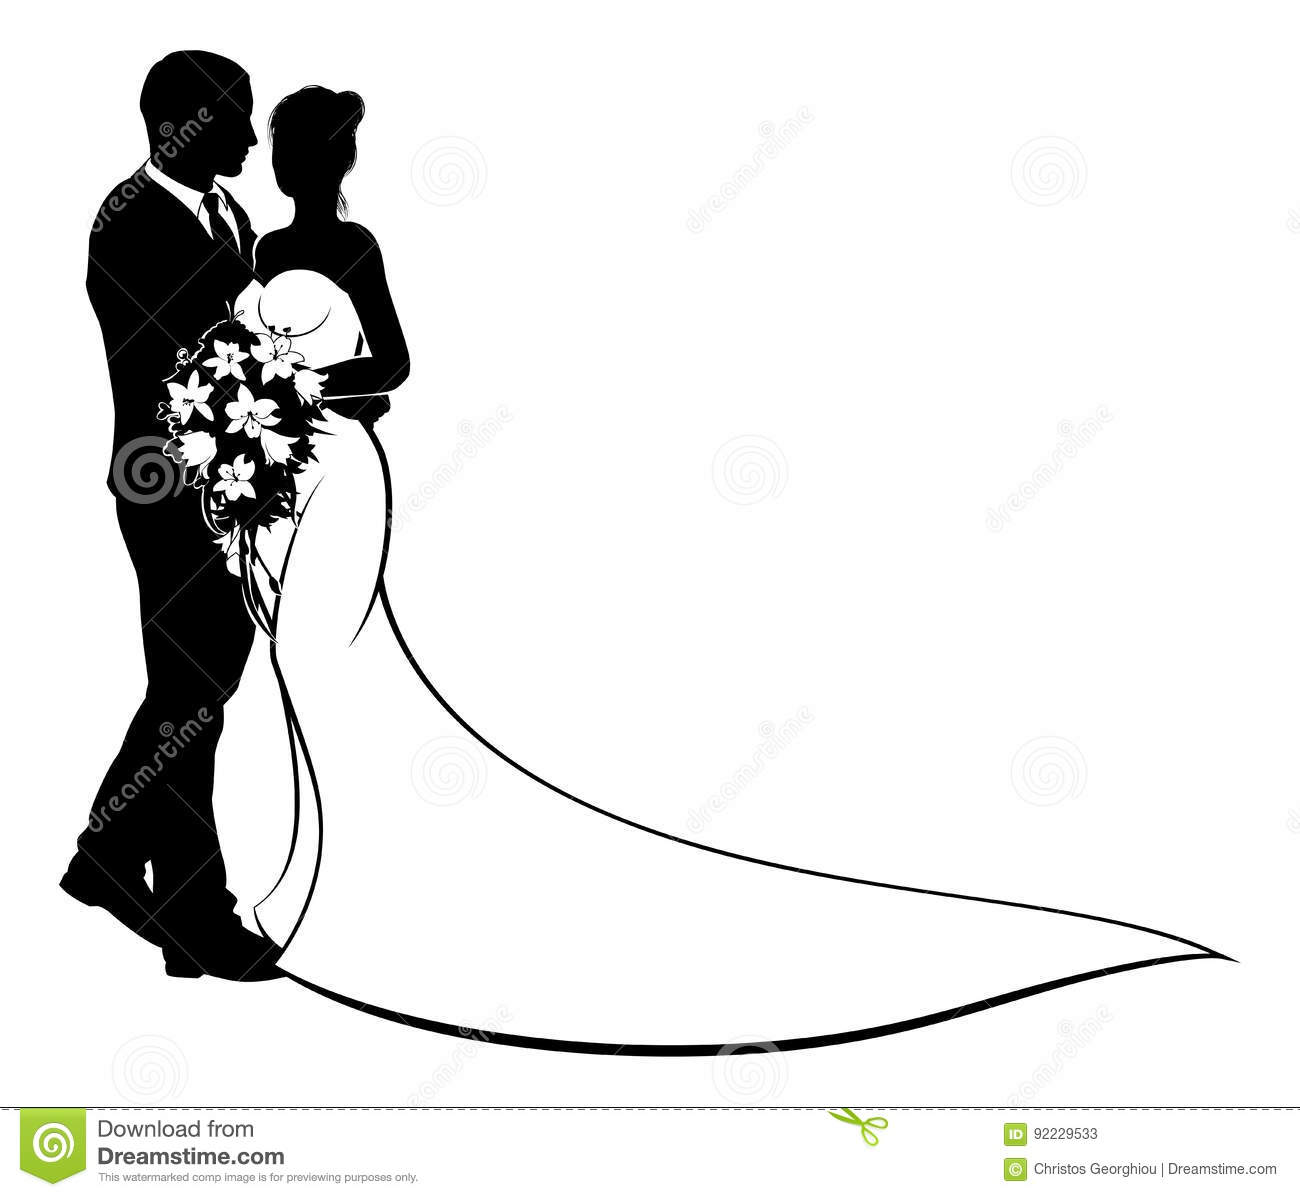 bride and groom silhouette wedding concept stock vector rh dreamstime com